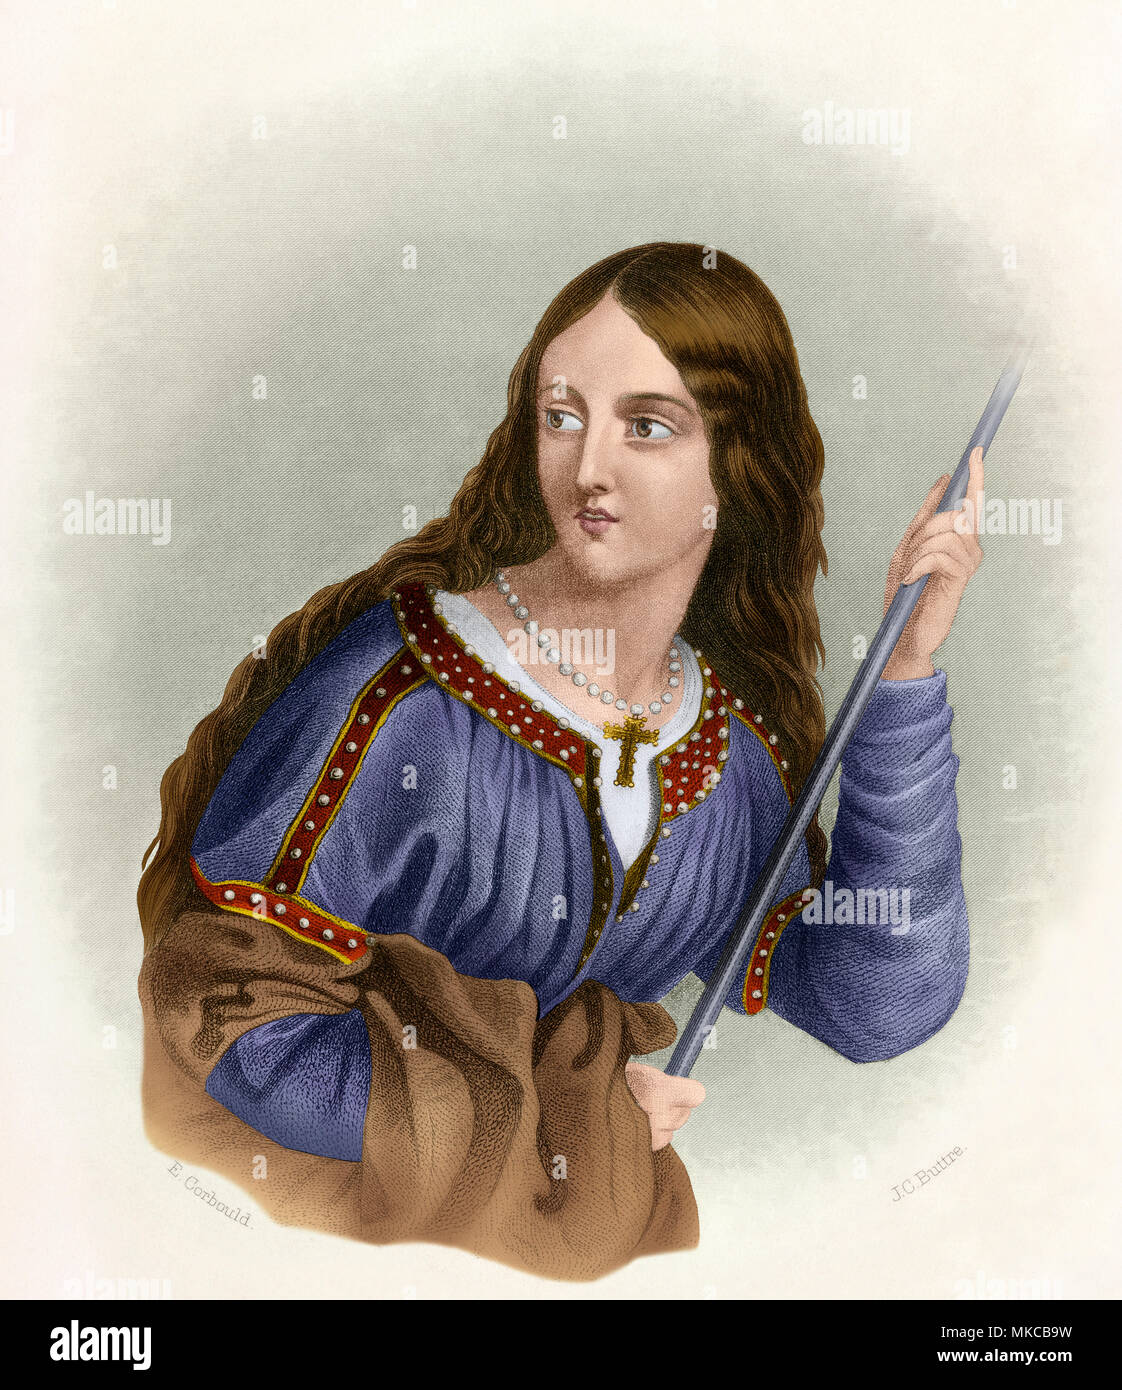 Adela, Countess of Blois (Saint Adela), daughter of William the Conqueror and mother of King Stephen. Digitally colored engraving - Stock Image